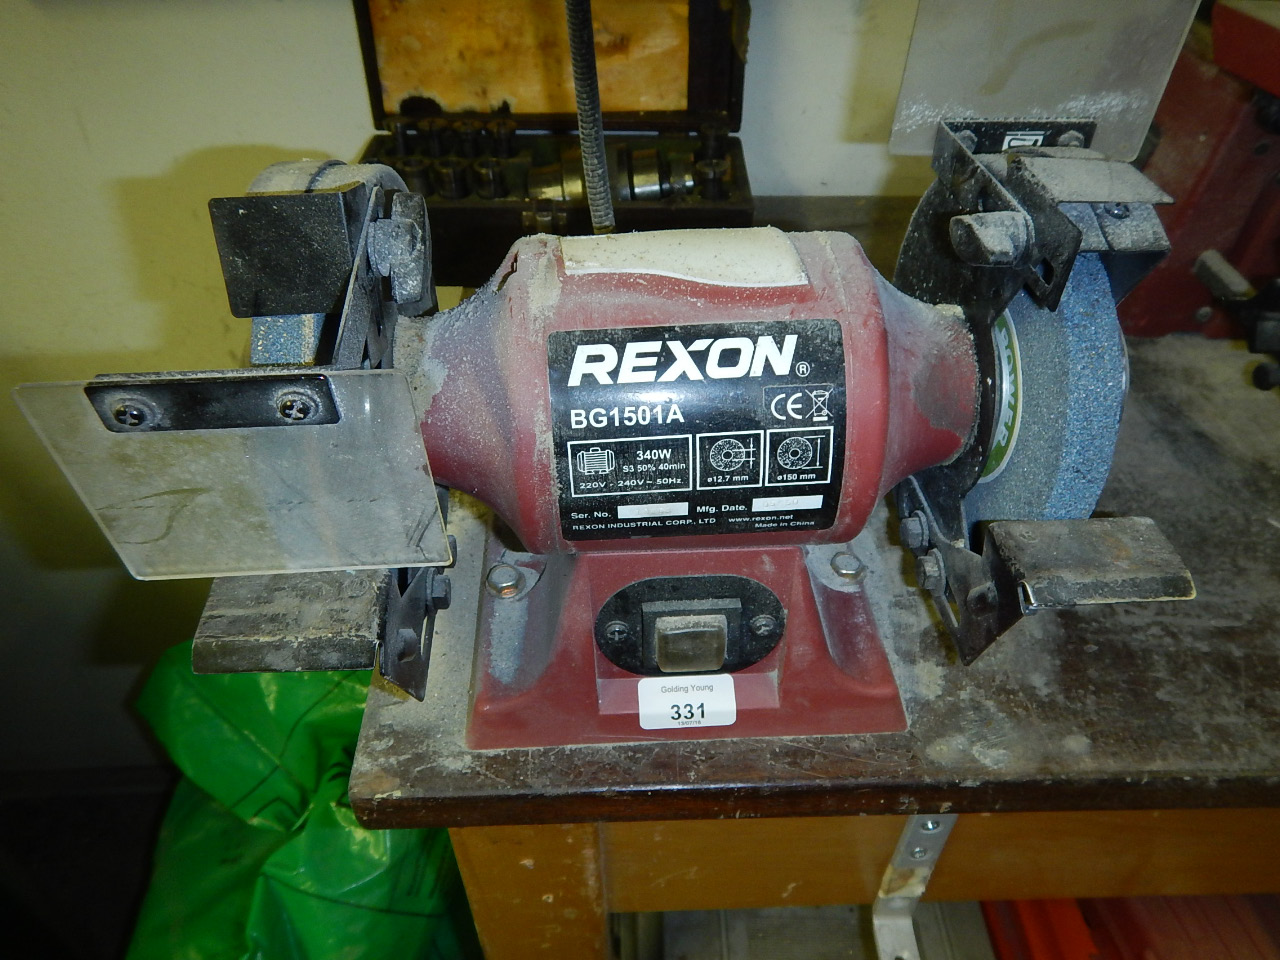 Superb Price Guide For A Rexon Bg1501A 340 Watt Bench Grinder Viewing Caraccident5 Cool Chair Designs And Ideas Caraccident5Info